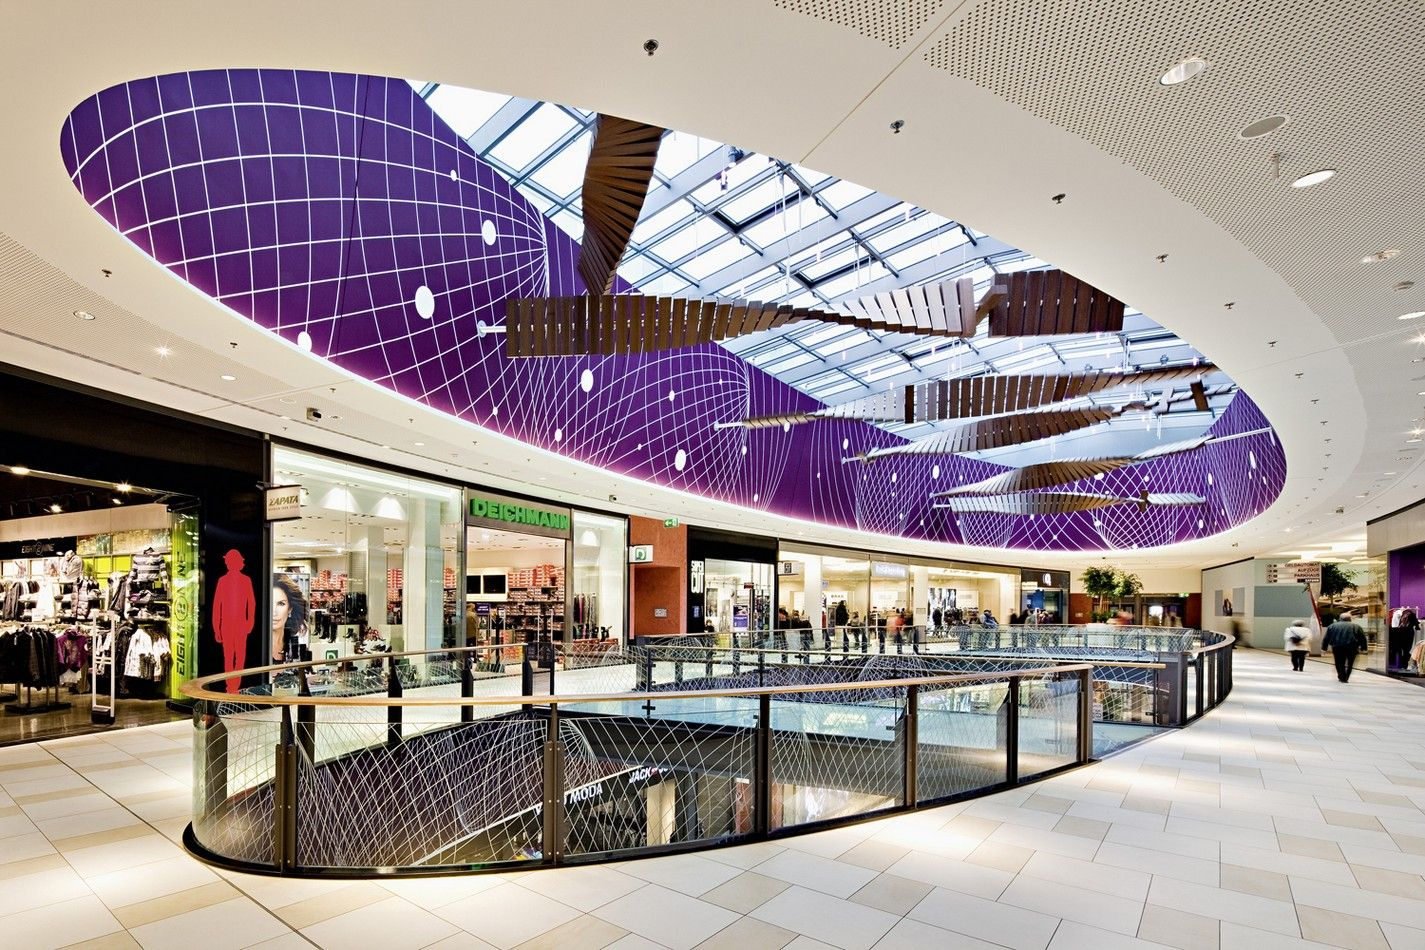 2ec5a7b2e73c HPP Architects - Project - Loop 5 Shopping Center - Image-1 ...